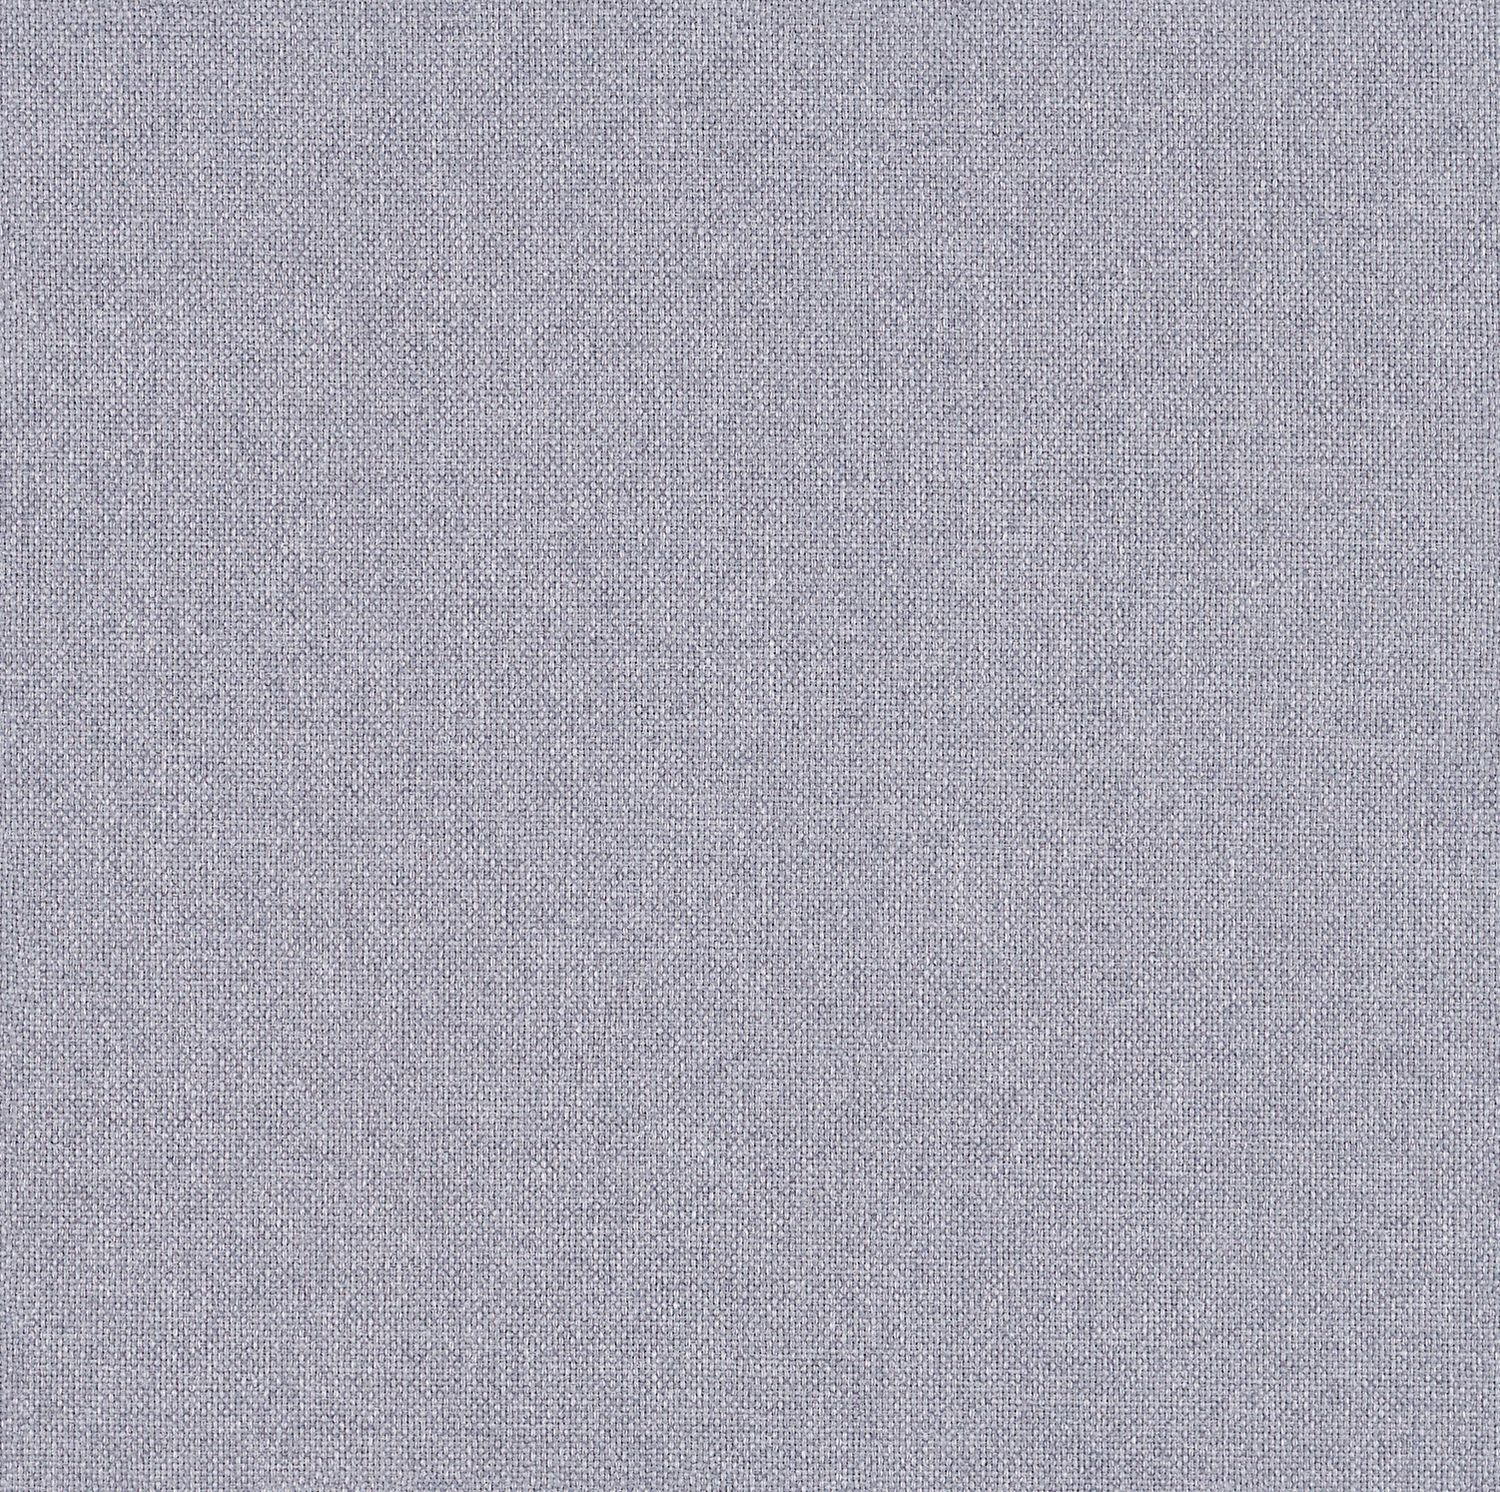 Backdrop - Shimmer - 1027 - 05 - Half Yard Tileable Swatches